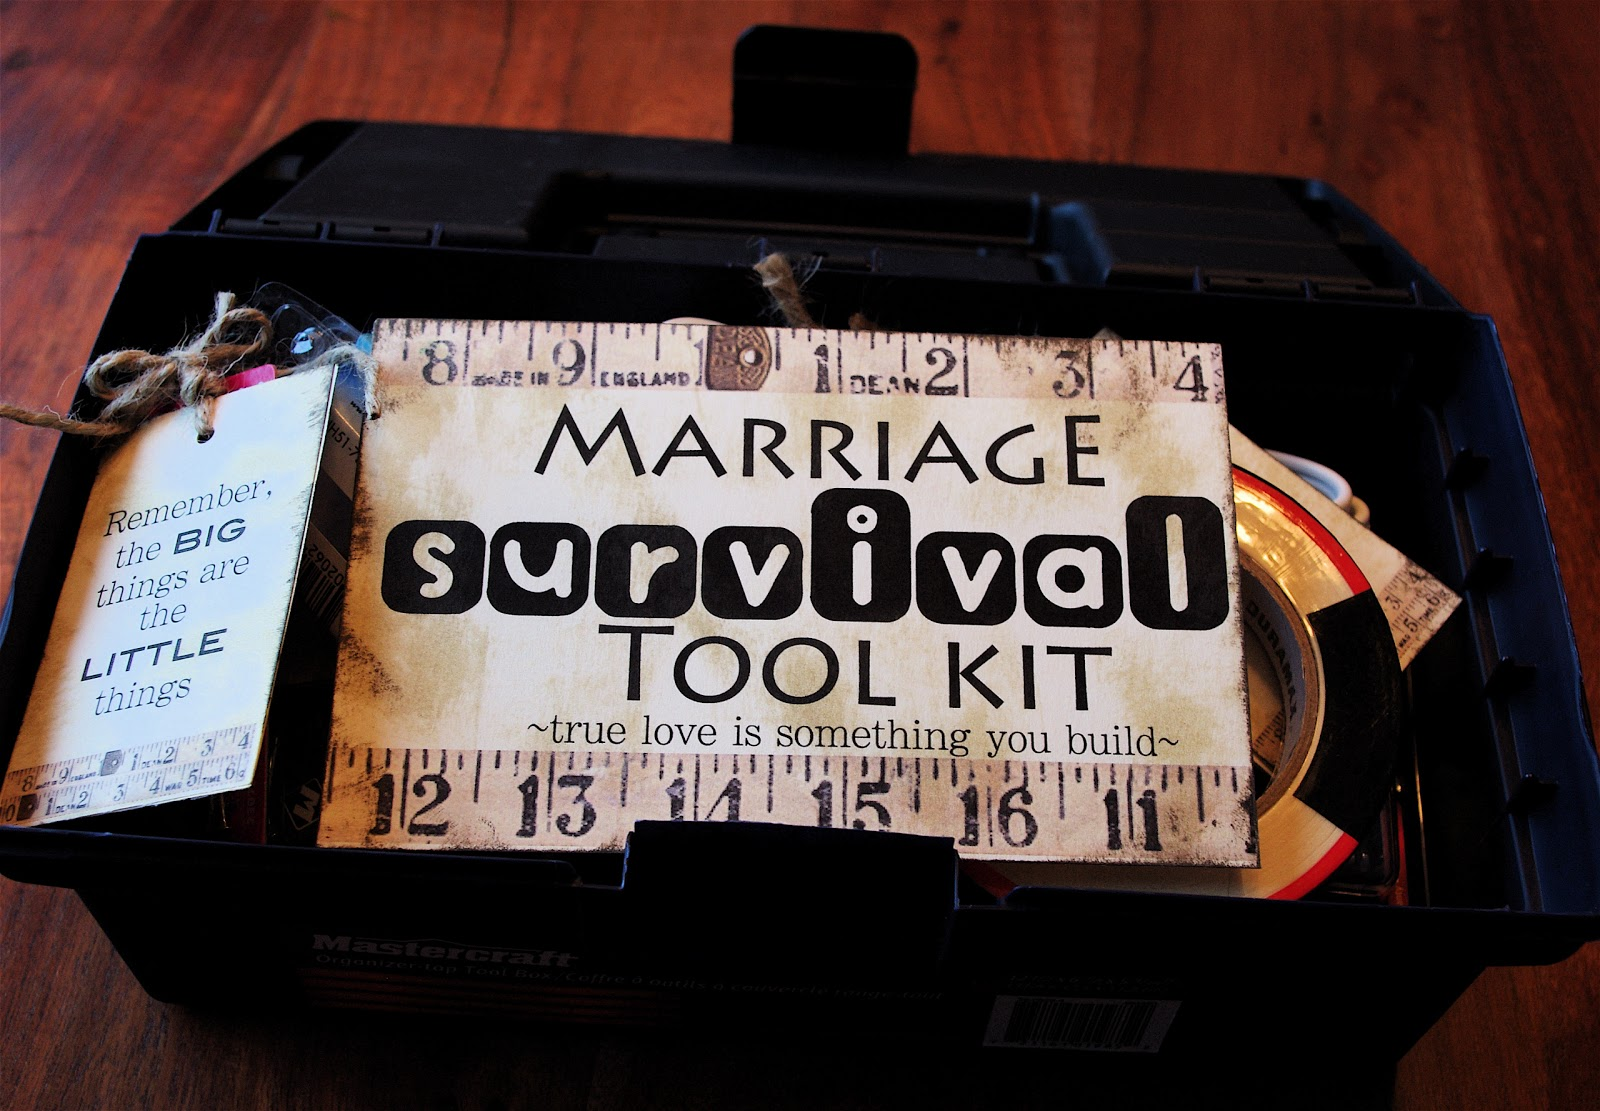 ... marriage survival tool kit together this was for a wedding gift but